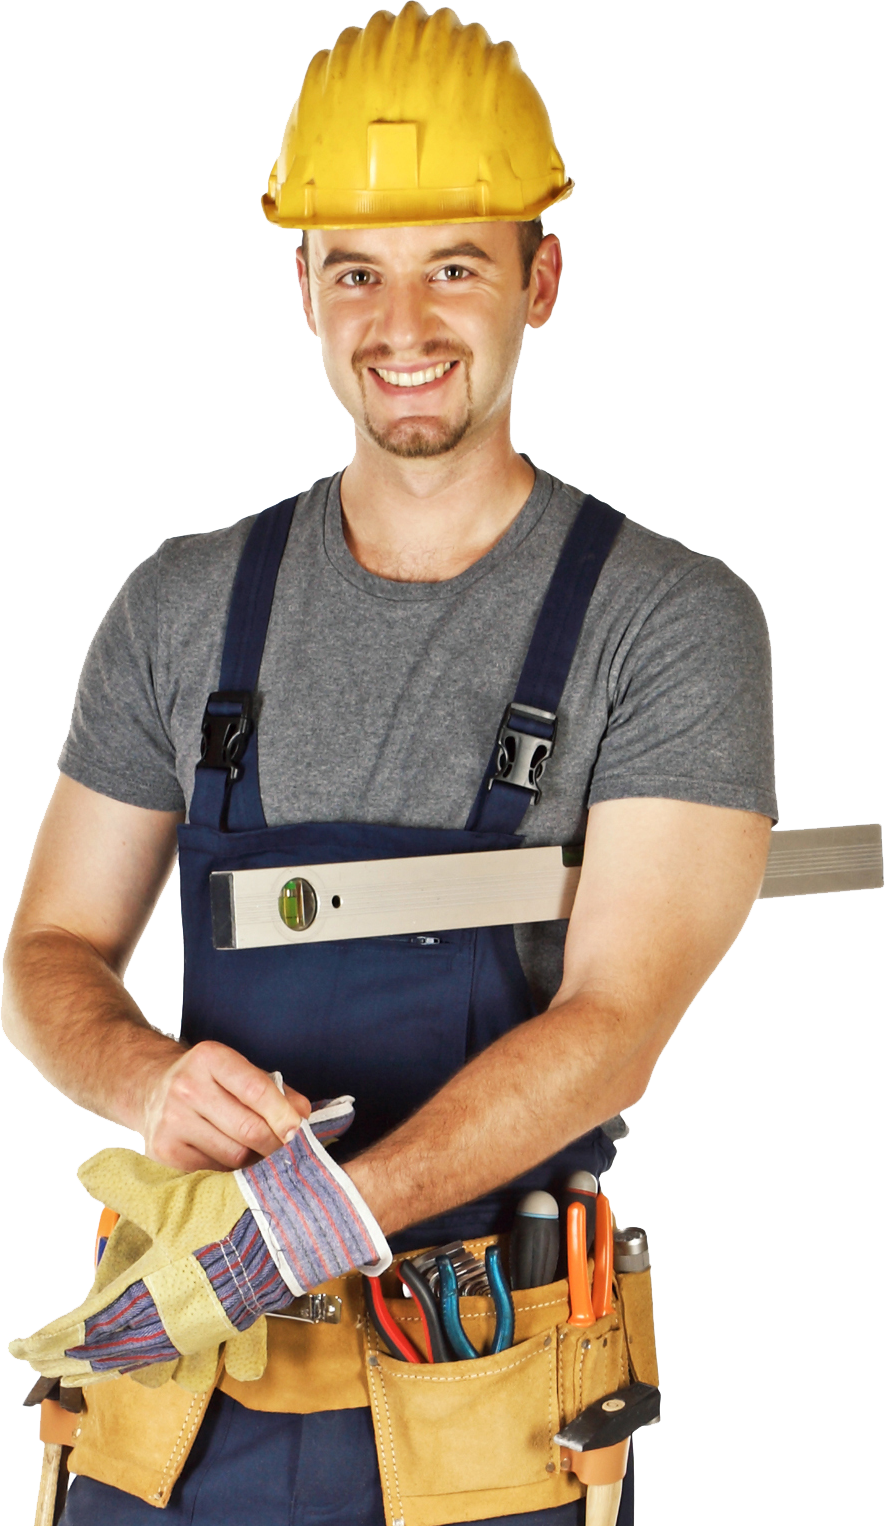 Construction man png. Tool stock photography architectural